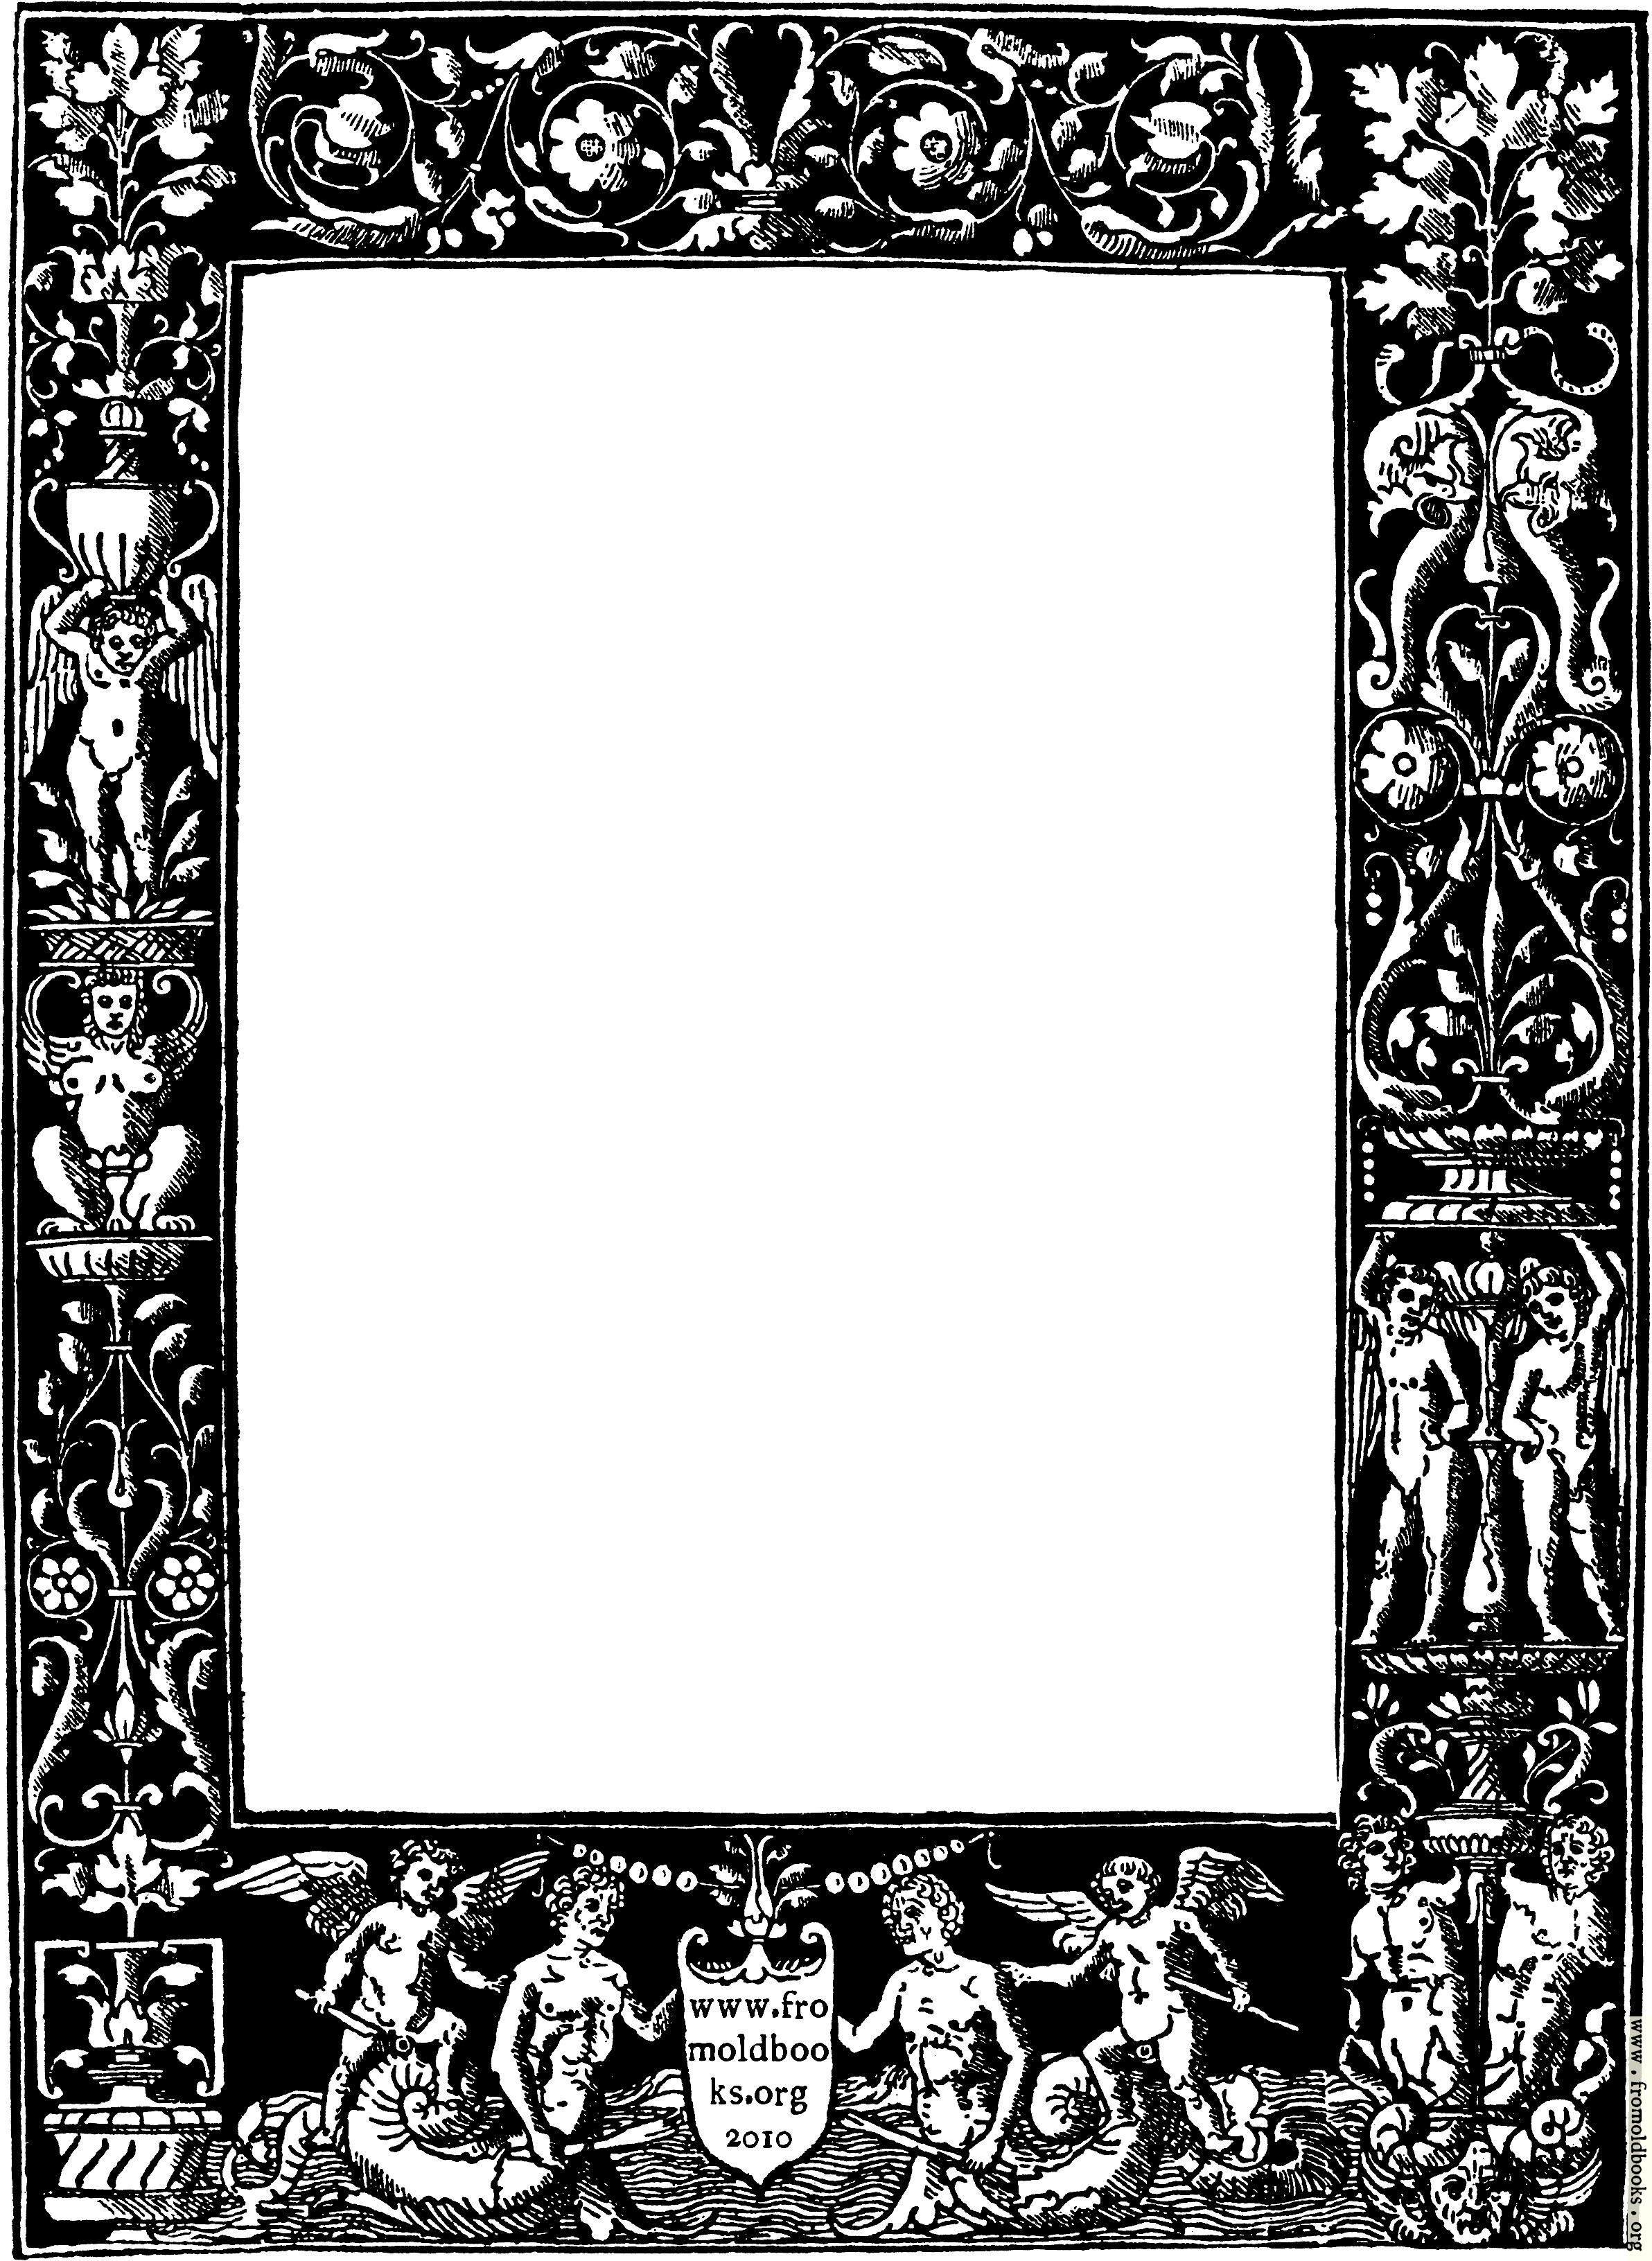 ornate border from title page black version 2384x3263 1m